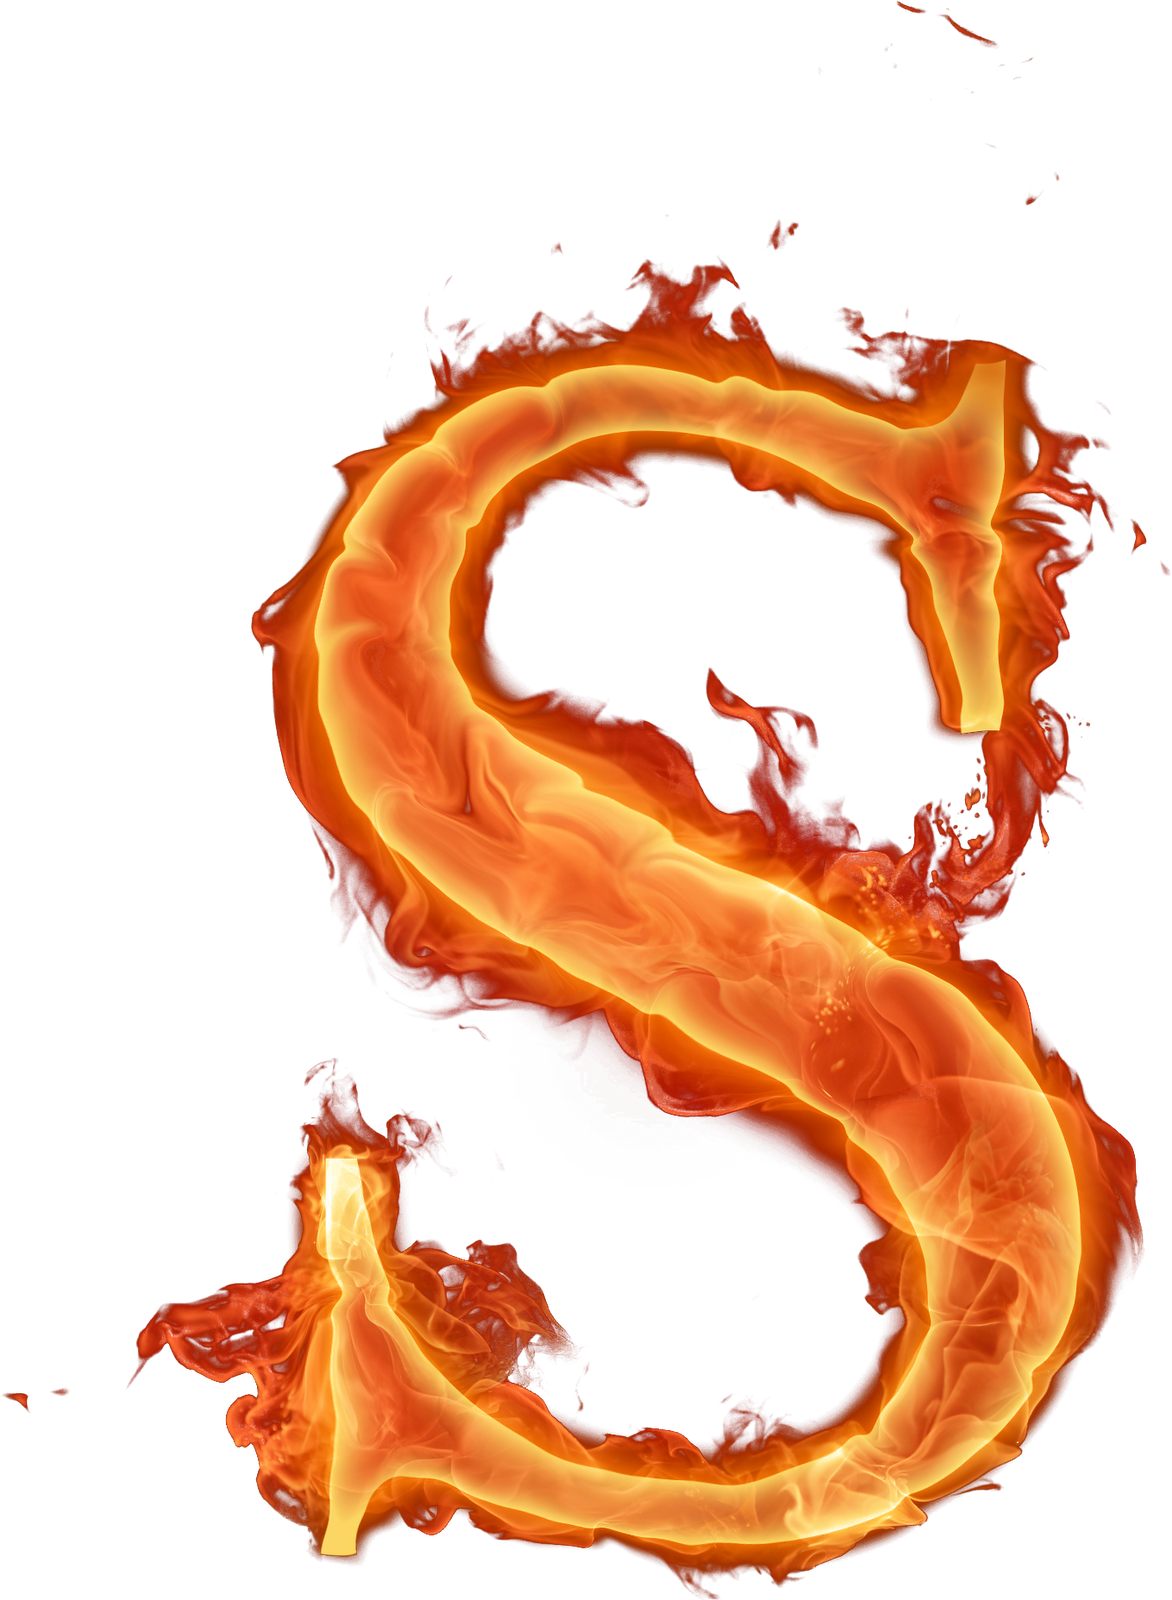 Fire letter l png. Letras fogo chama alfabeto